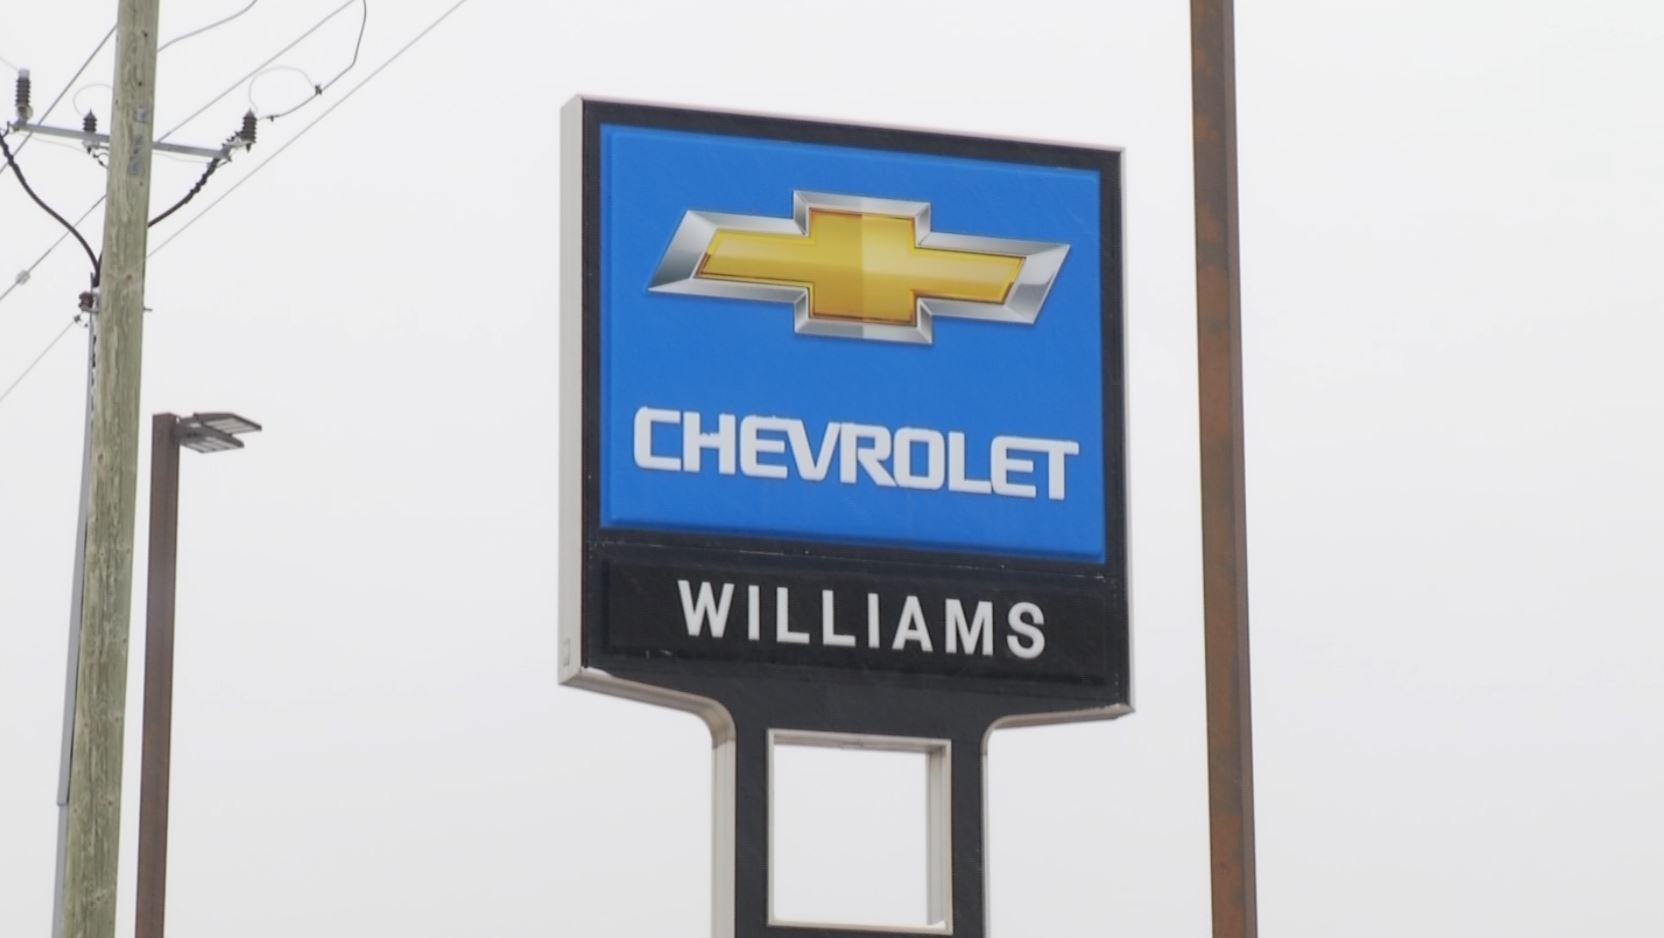 Williams Chevrolet Partners With The Salvation Army For Food Drive 9 10 News